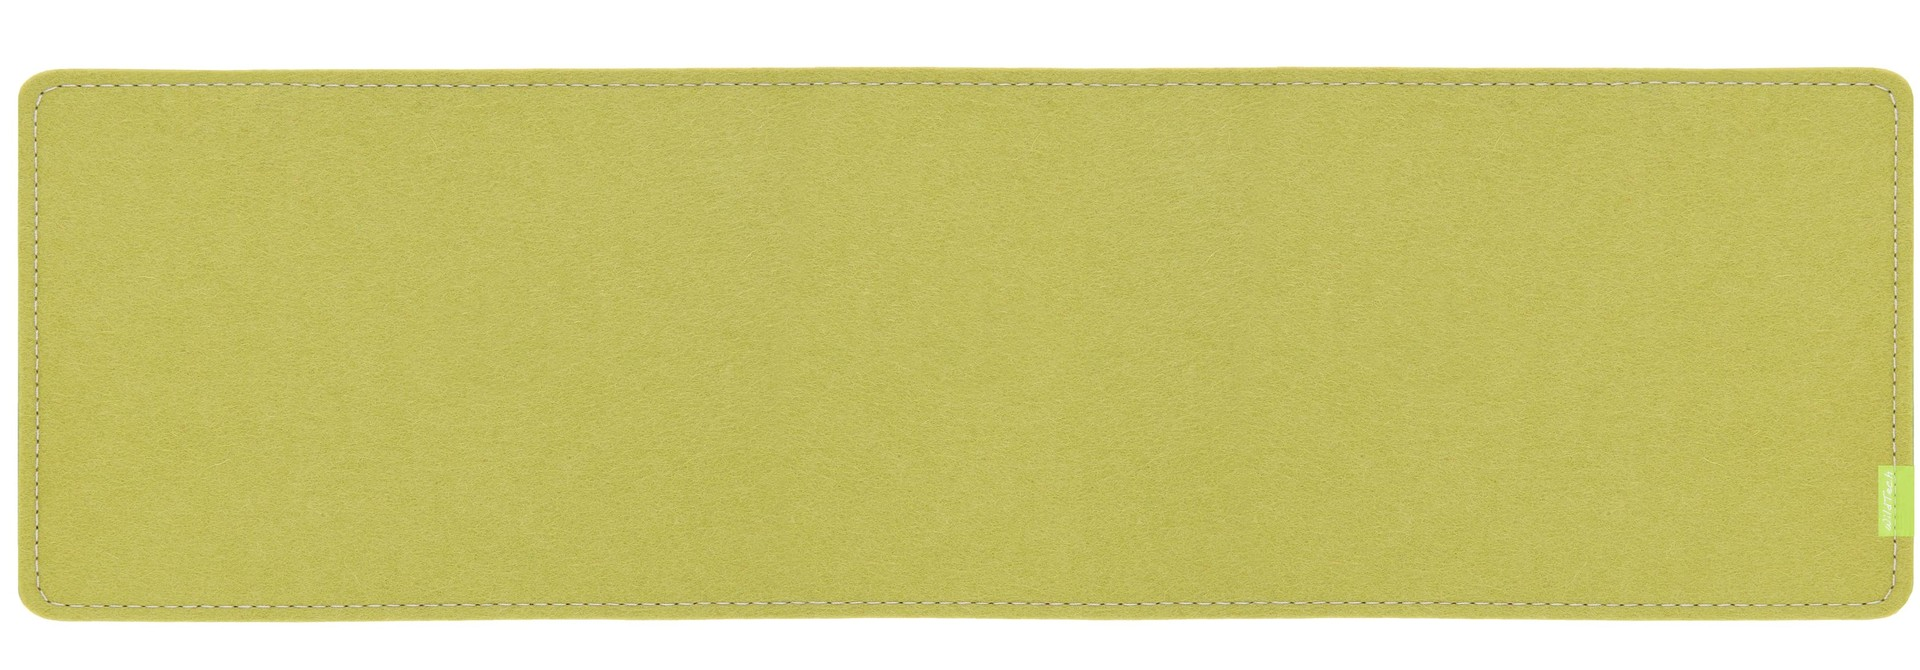 Underlay Lime-Green